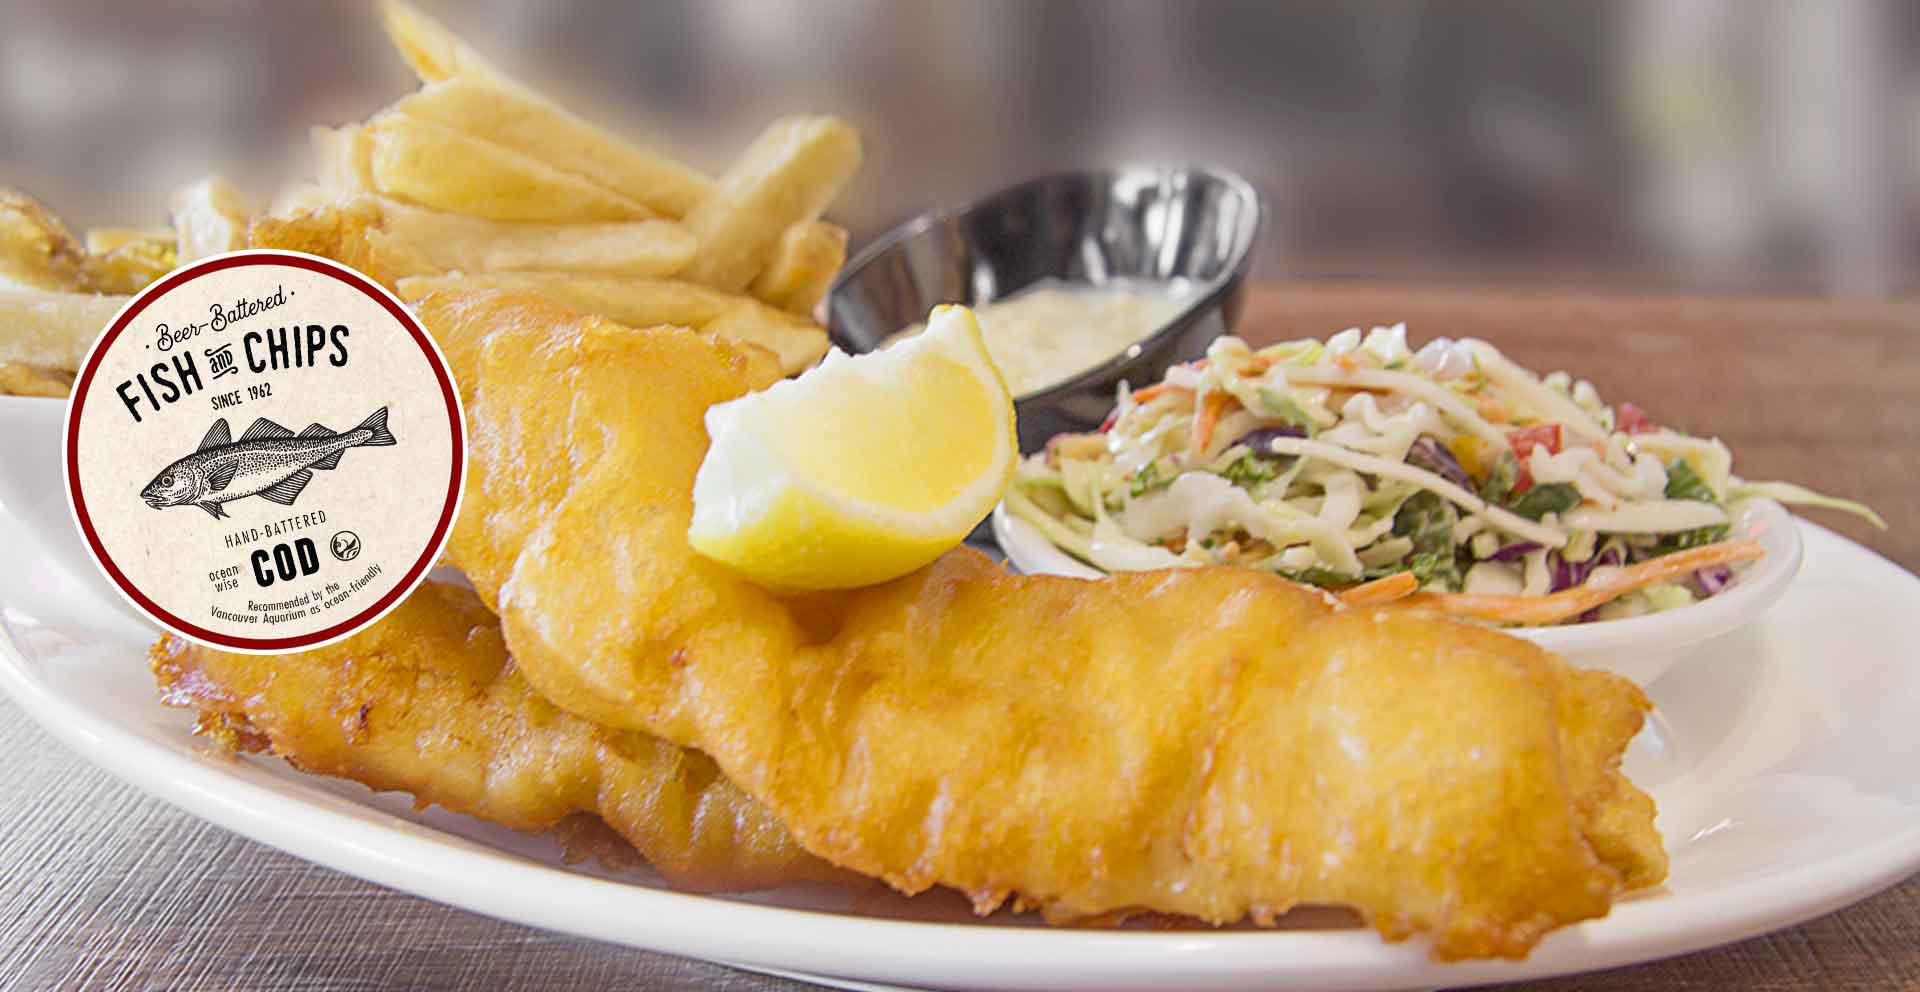 Hand-and-beer battered Ocean Wise cod fillets paired with fresh cut Kennebec fries. All made